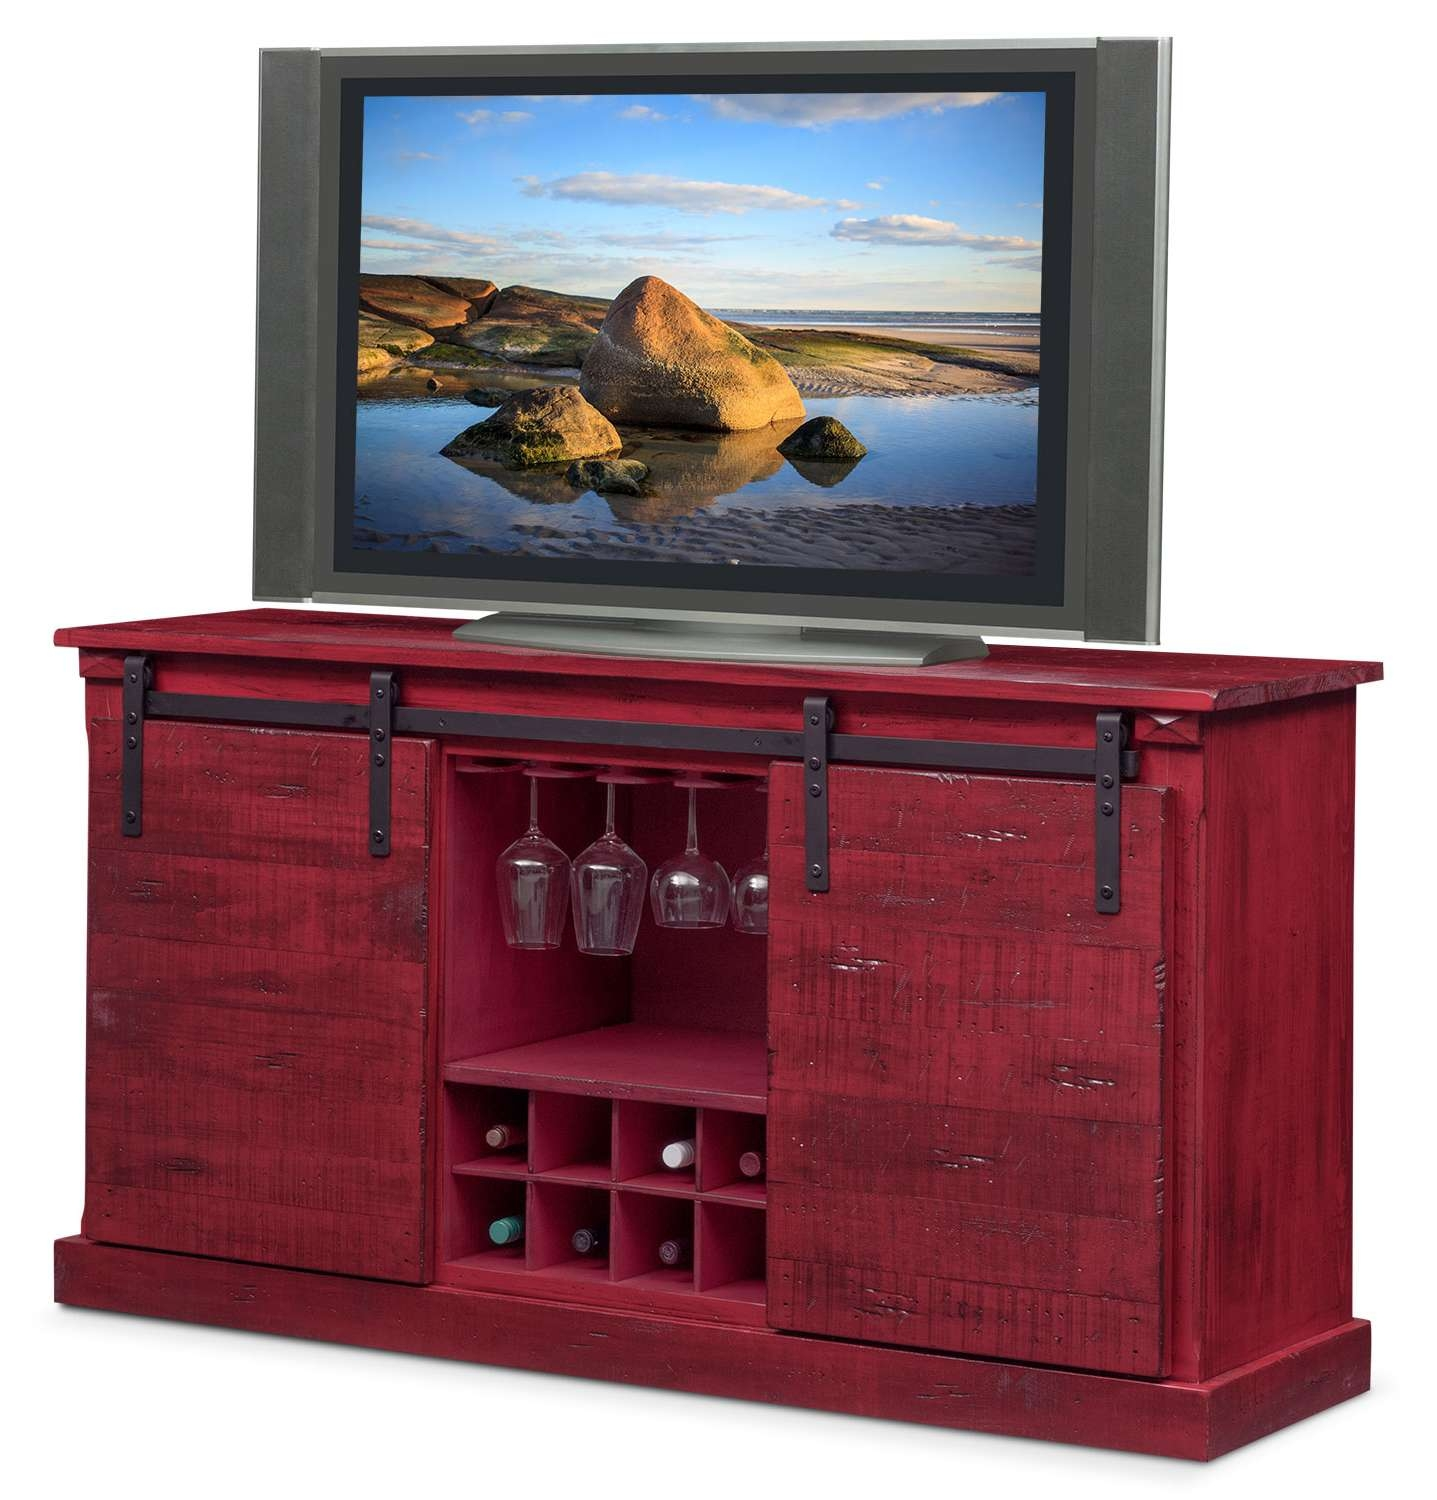 Buffet & Sideboard Cabinets | Value City Furniture And Mattresses In Red Sideboards Buffets (View 15 of 20)